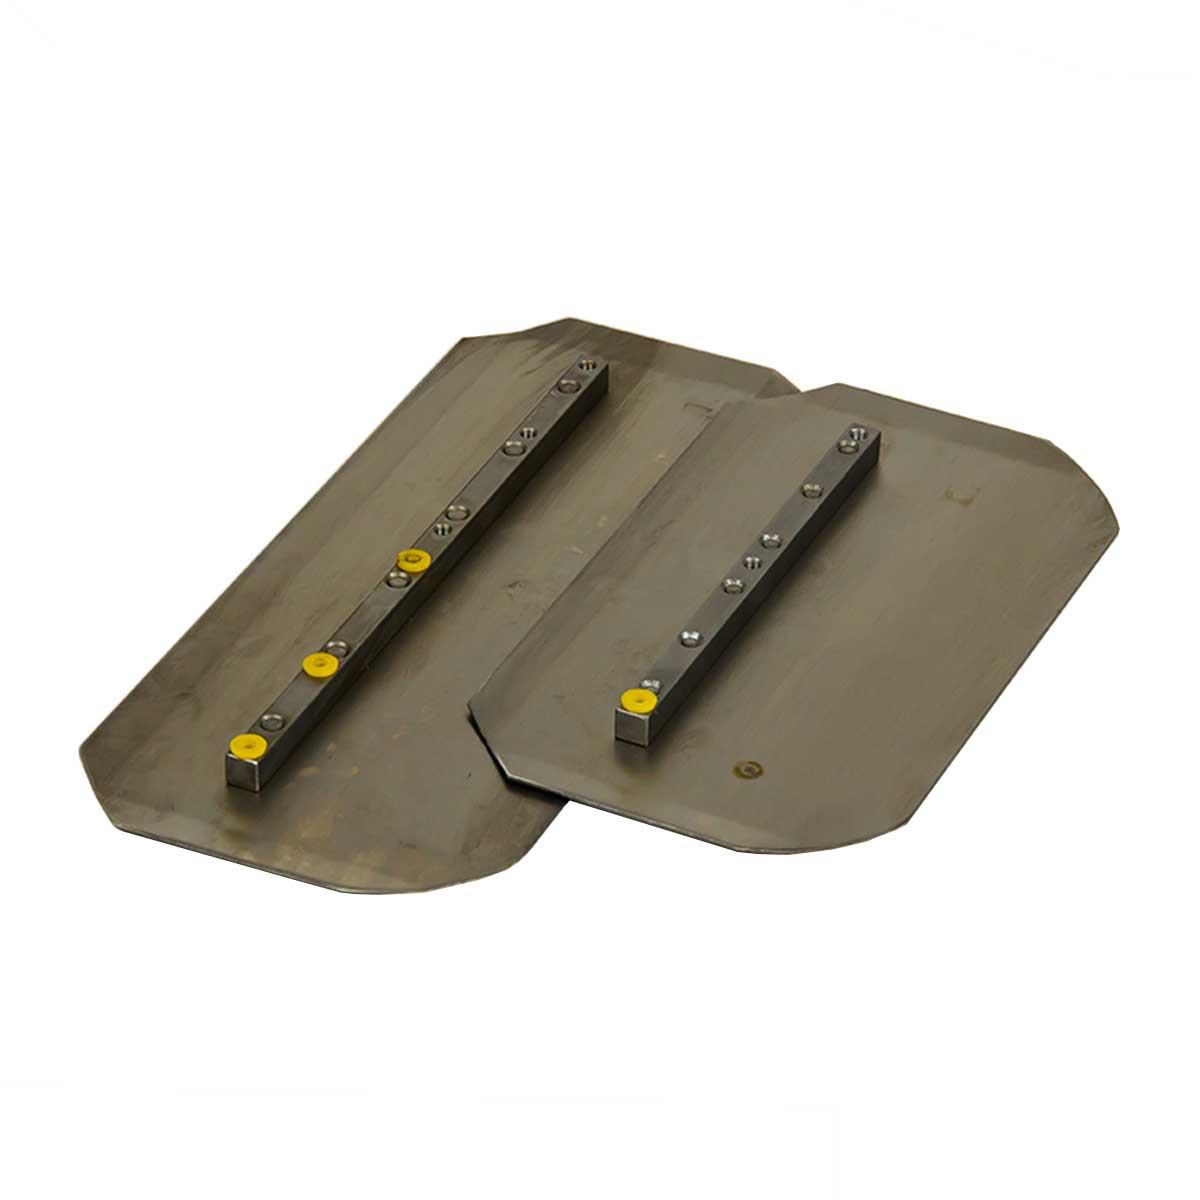 Bartell Combination Trowel Grizzly Blades